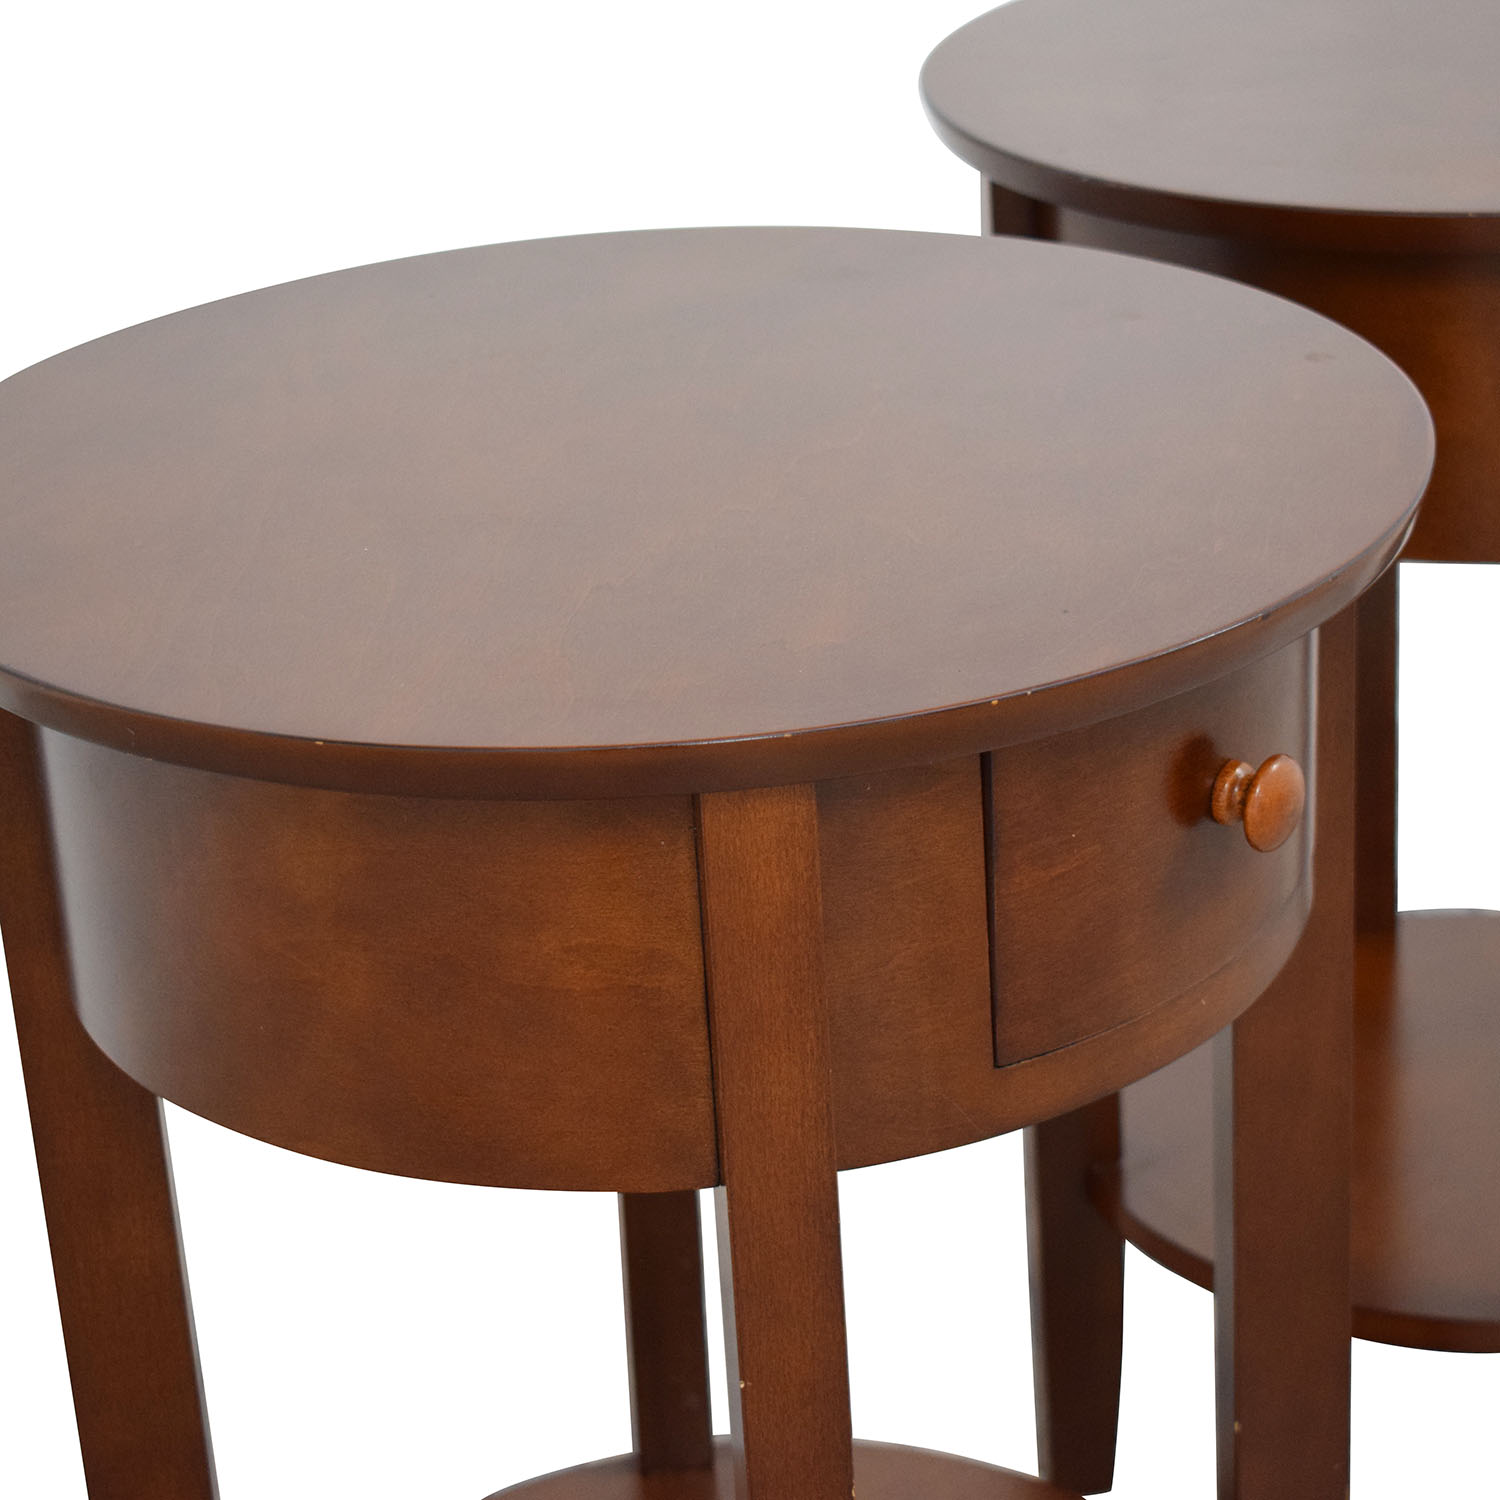 buy Pottery Barn Oval Nightstands Pottery Barn Tables